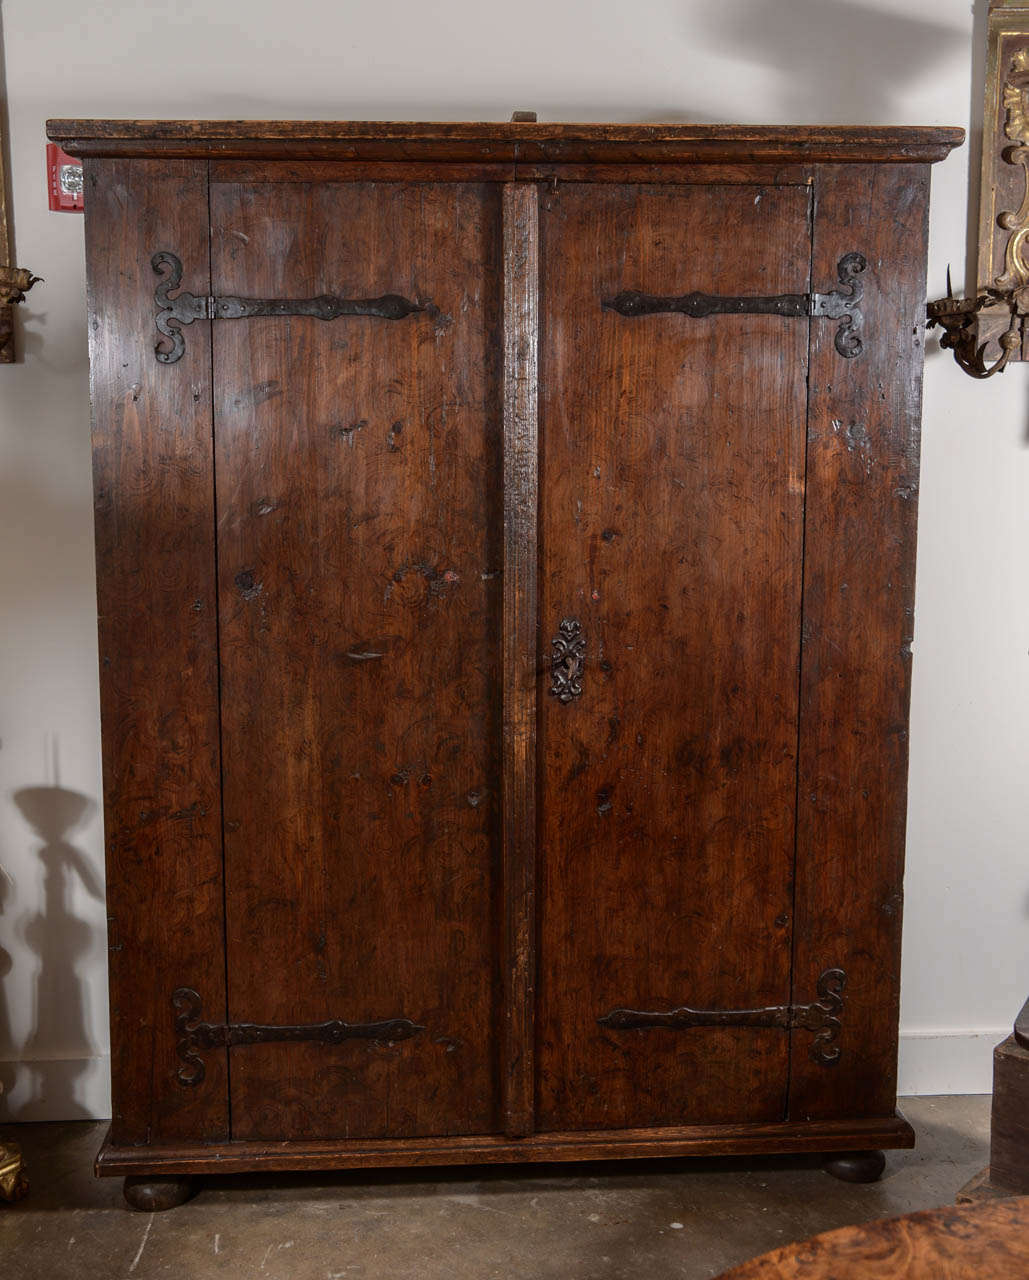 17th century rustic german armoire at 1stdibs. Black Bedroom Furniture Sets. Home Design Ideas